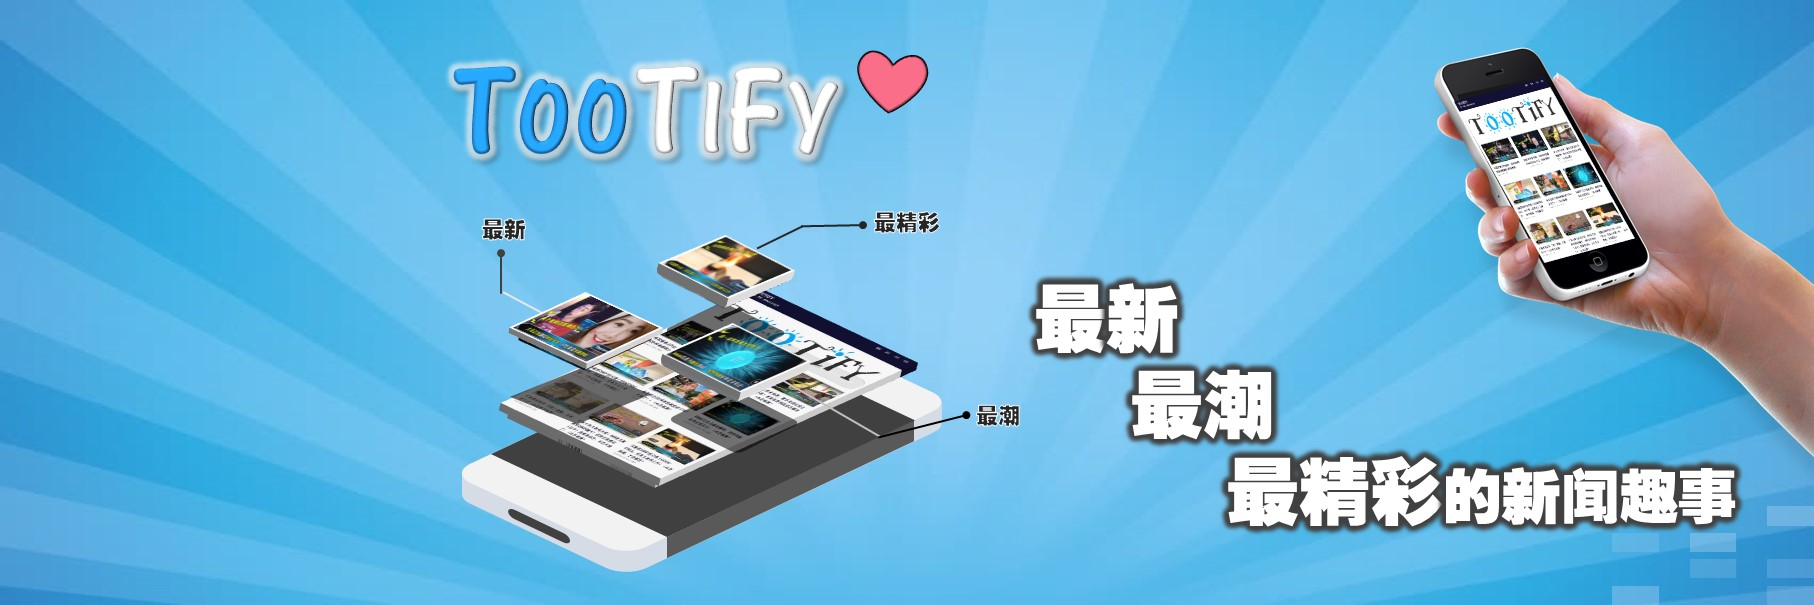 TOOTIFY